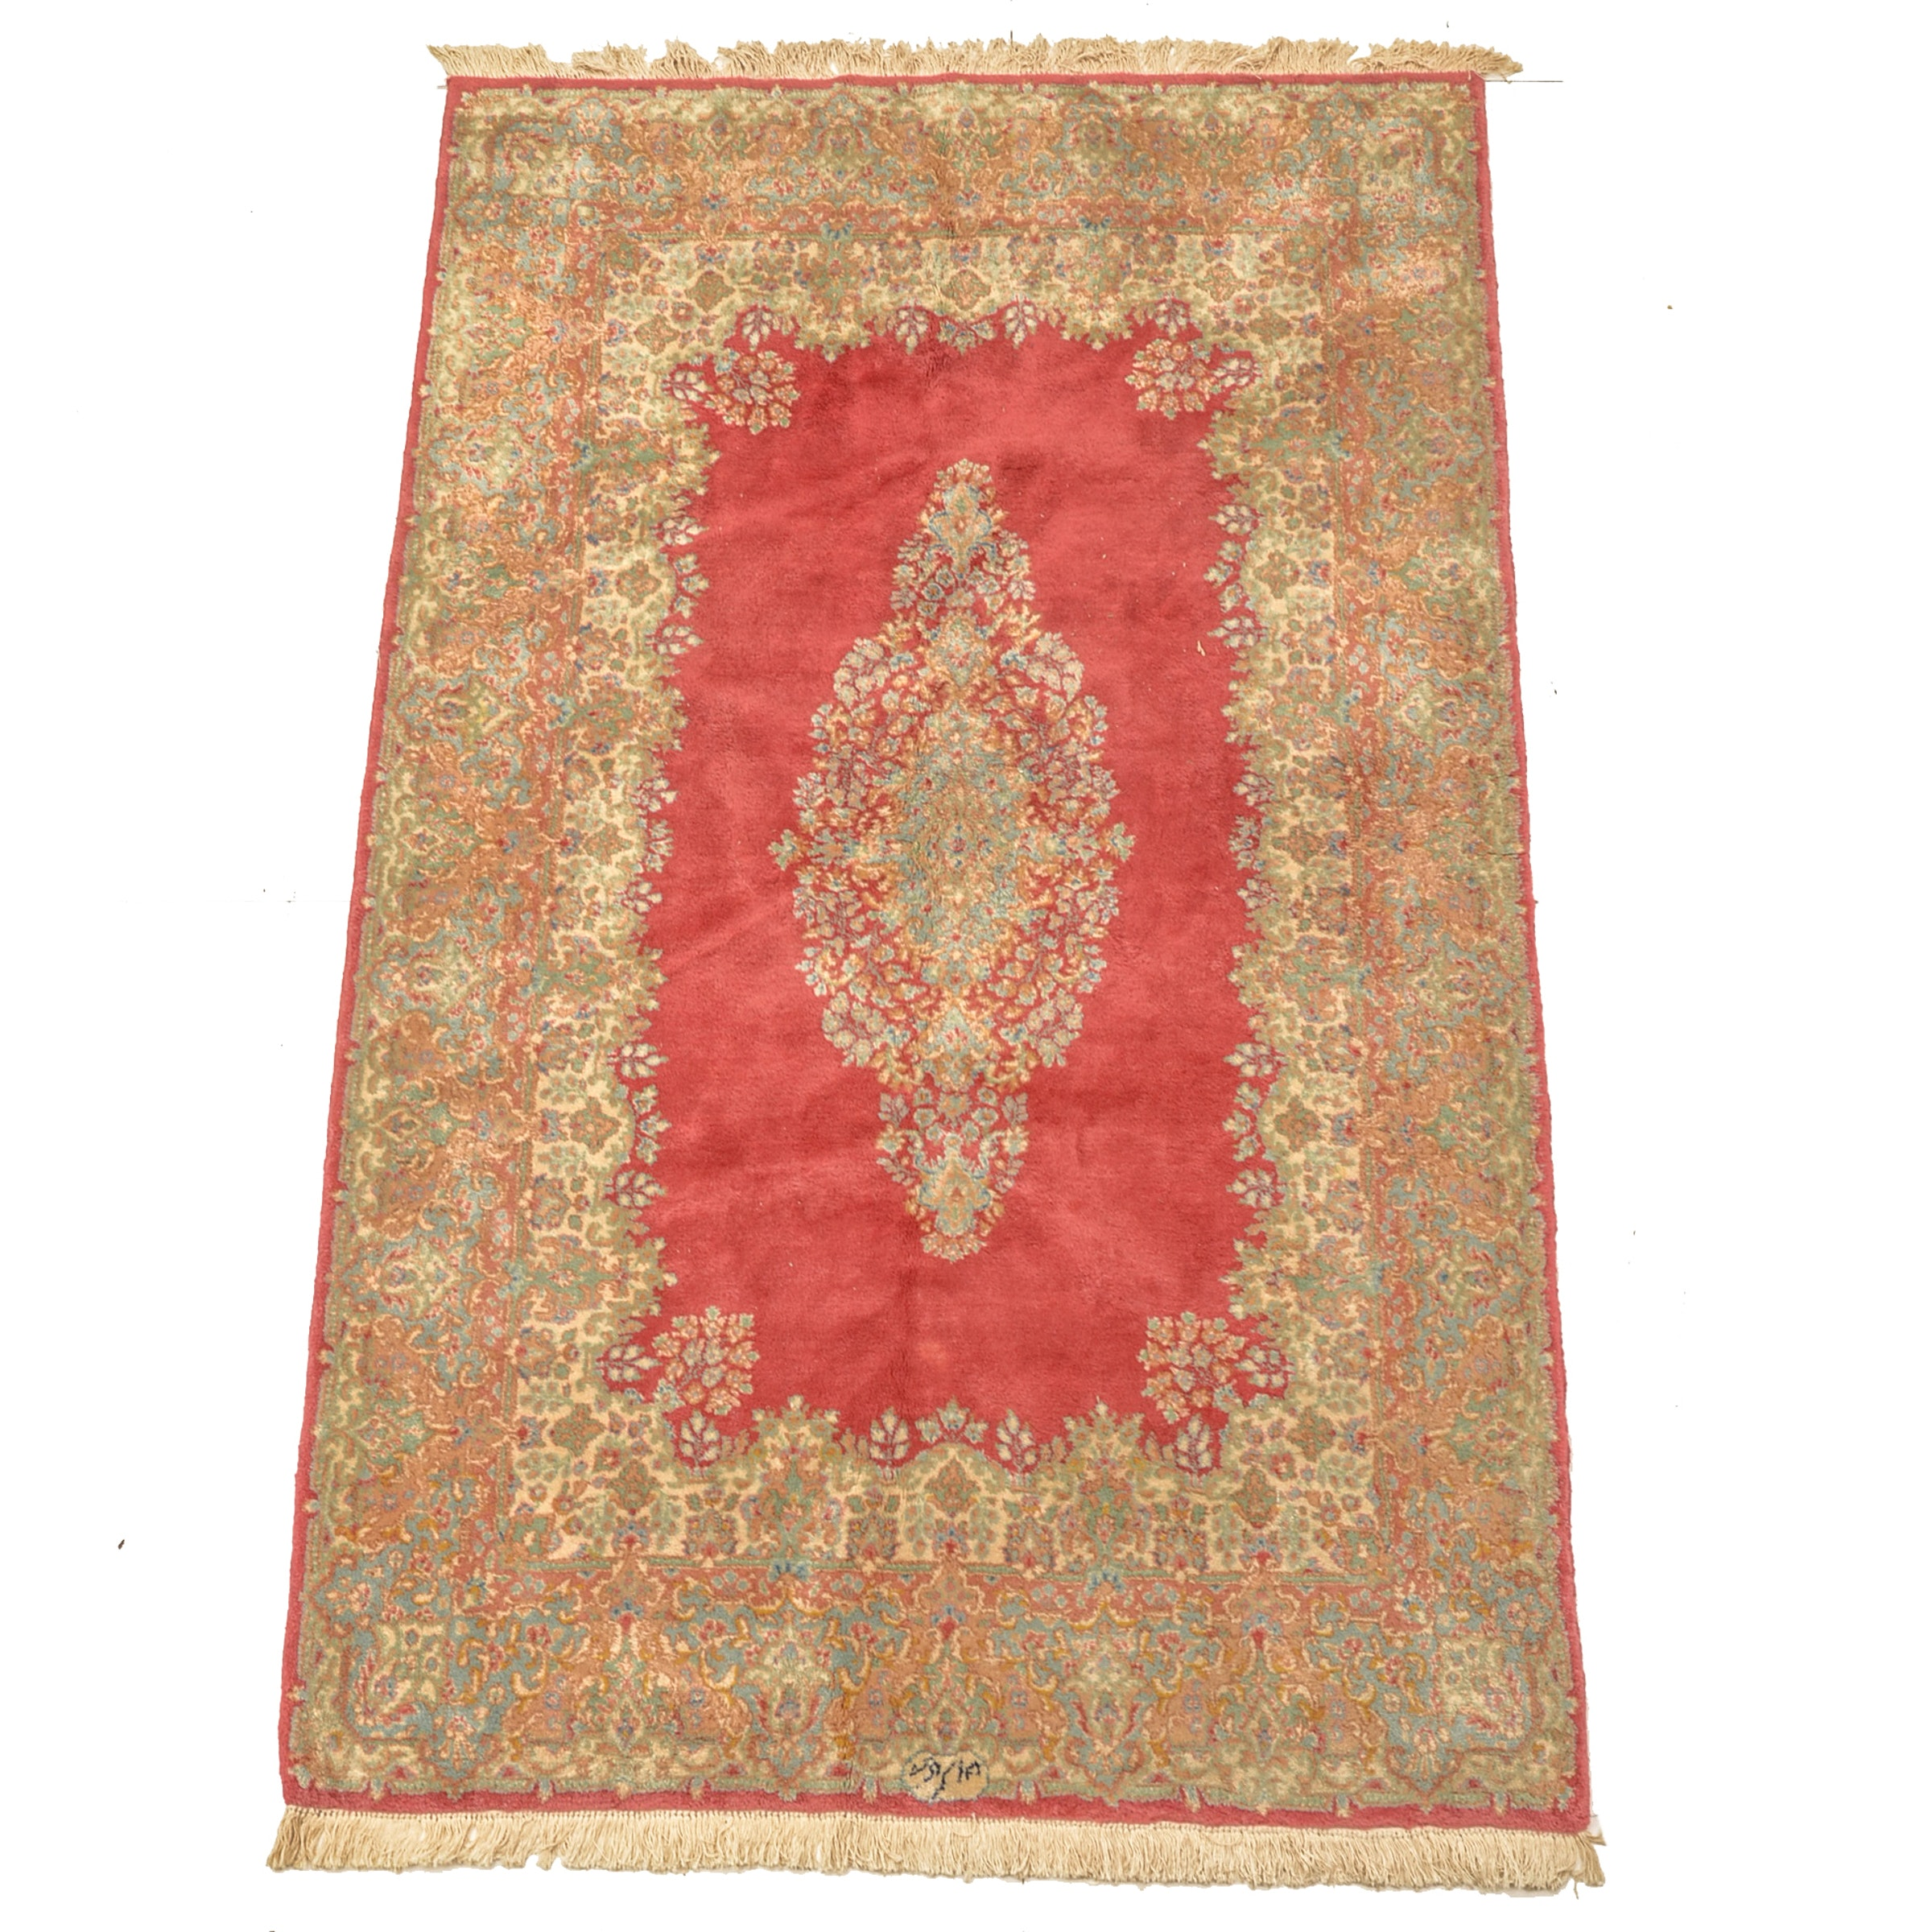 Signed Hand-Knotted Persian Kerman Wool Area Rug